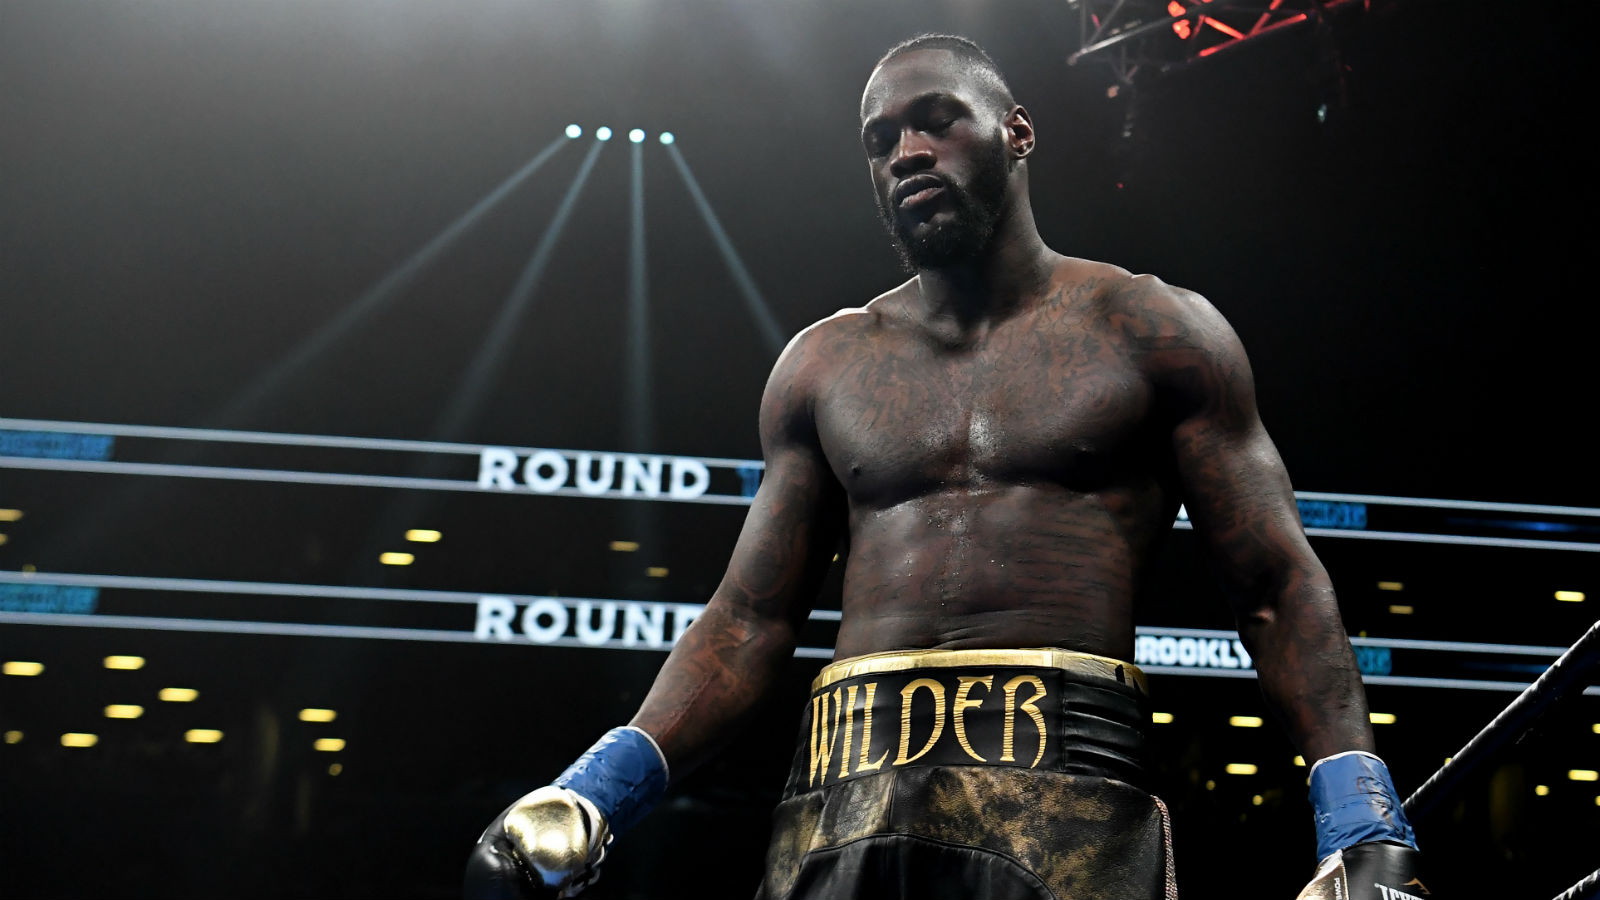 Tyson fury also complimented deontay wilder after the fight and said that he gave him a 'real worthy. Deontay Wilder Favorite in November Rematch Vs. Luis Ortiz